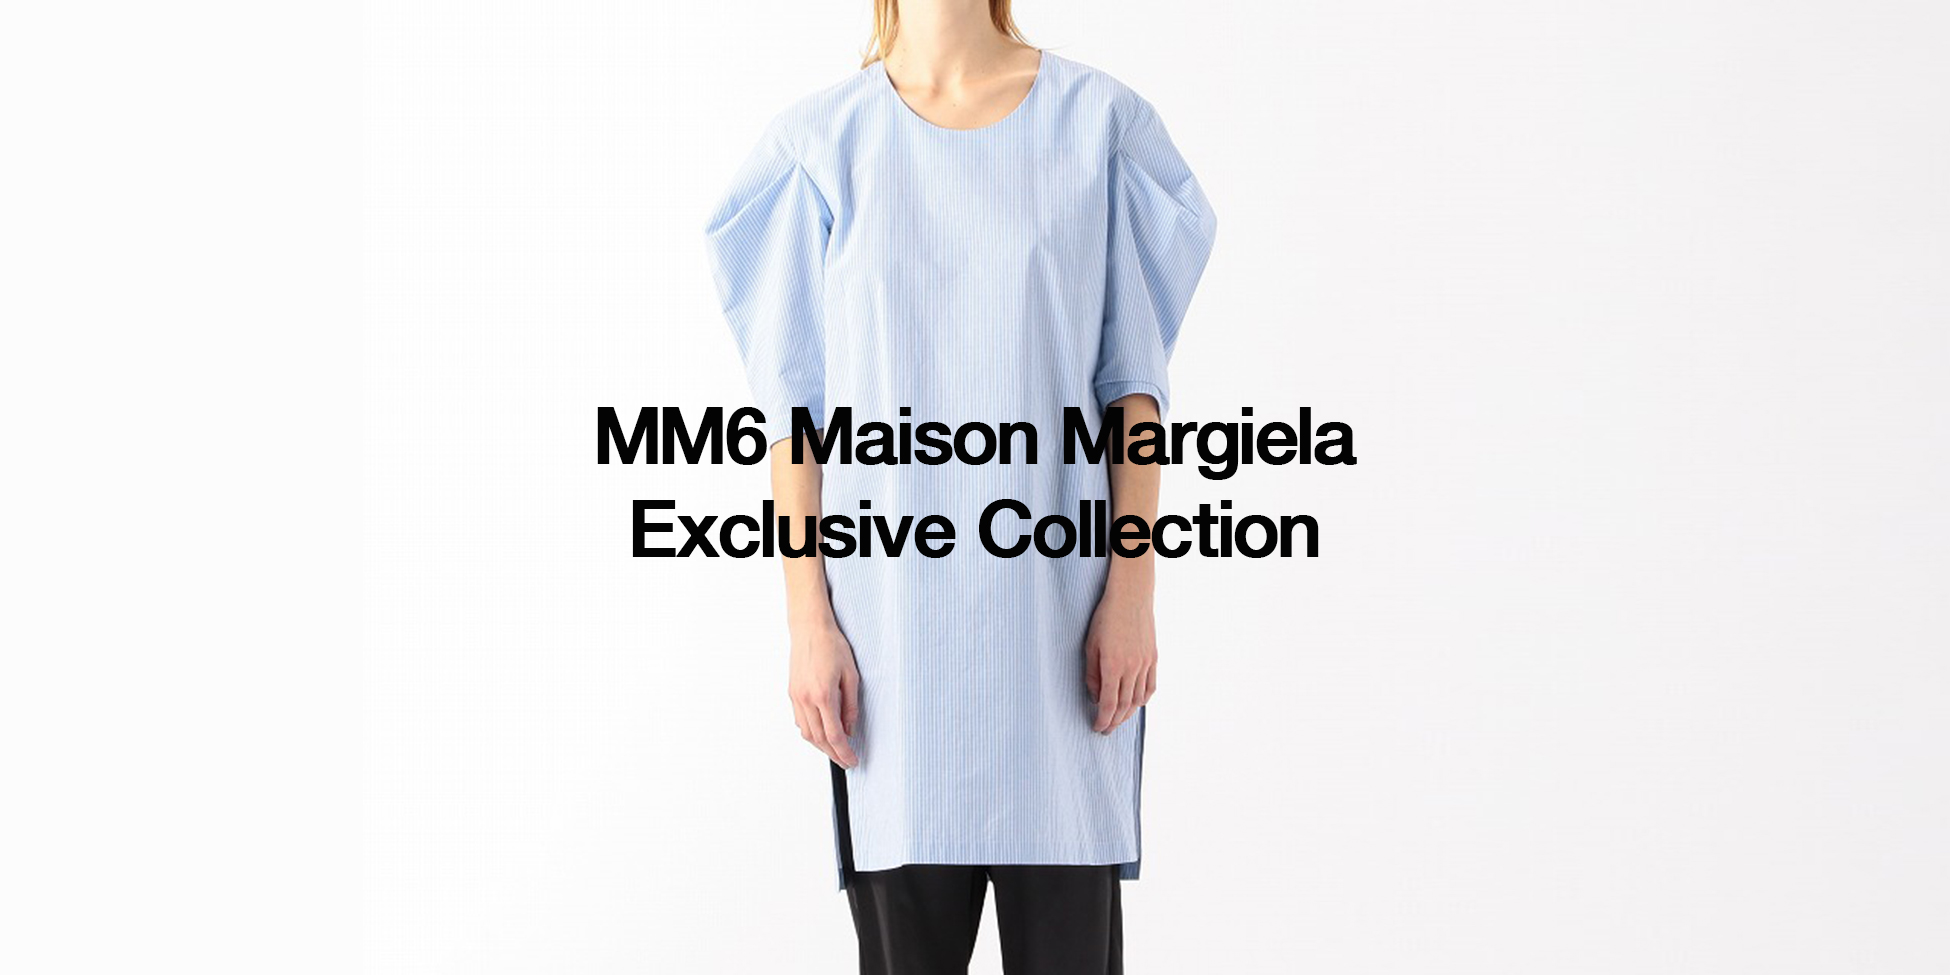 MM6 MAISON MARGIELA SPRING-SUMMER 2020 EXCLUSIVE COLLECTION FOR Edition